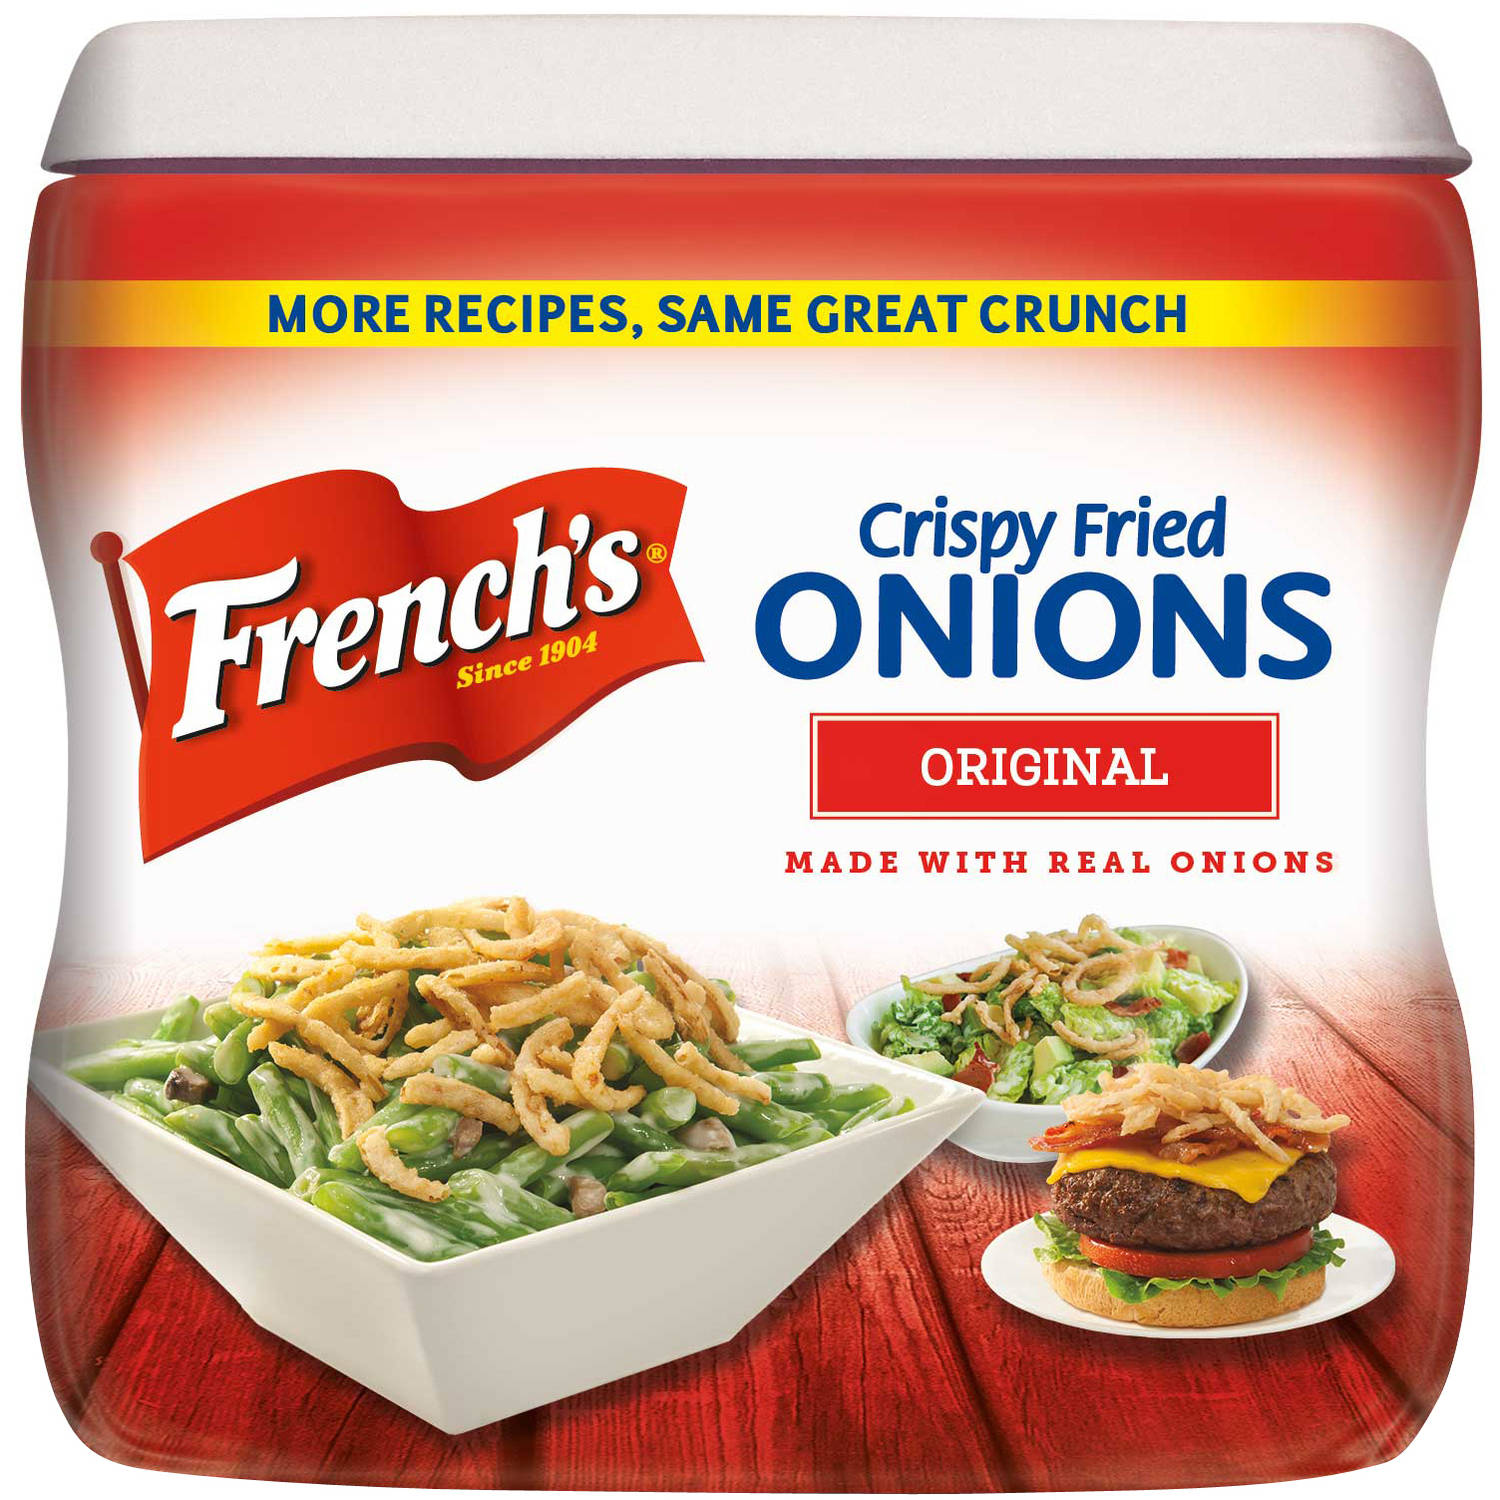 French's Crispy Fried Onions Original, 6 oz